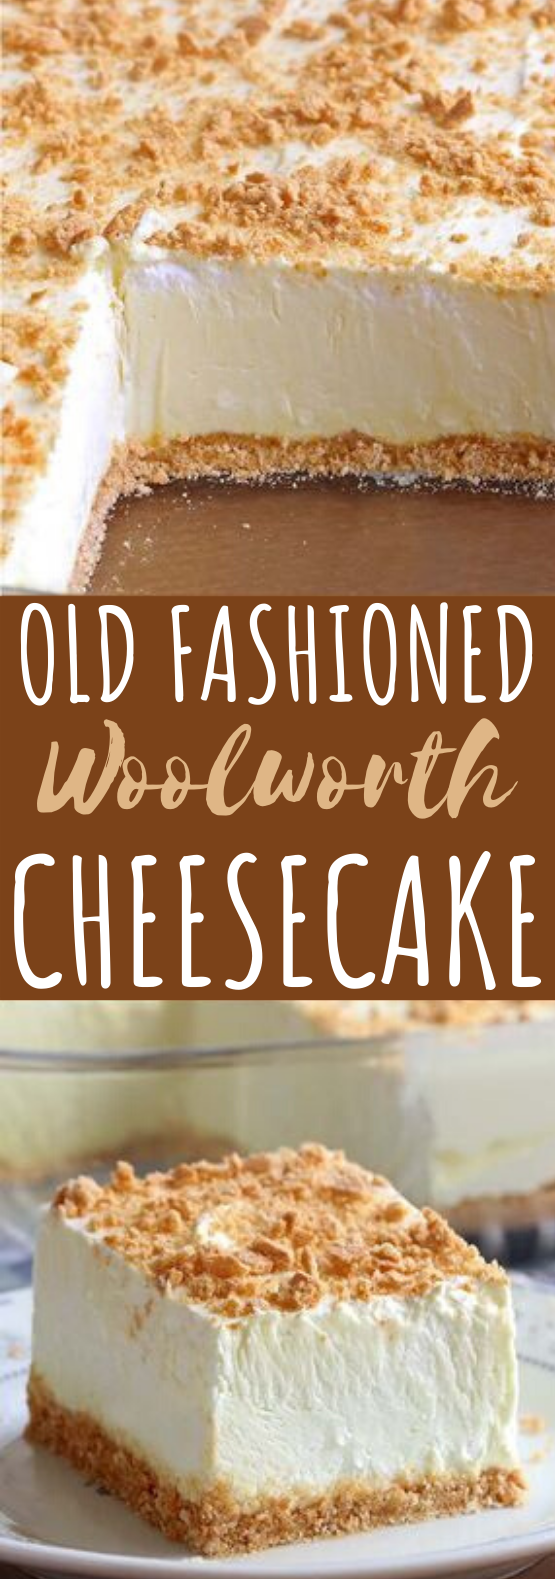 No Bake Classic Woolworth Cheesecake #desserts #cake #nobake #cheesecake #easy